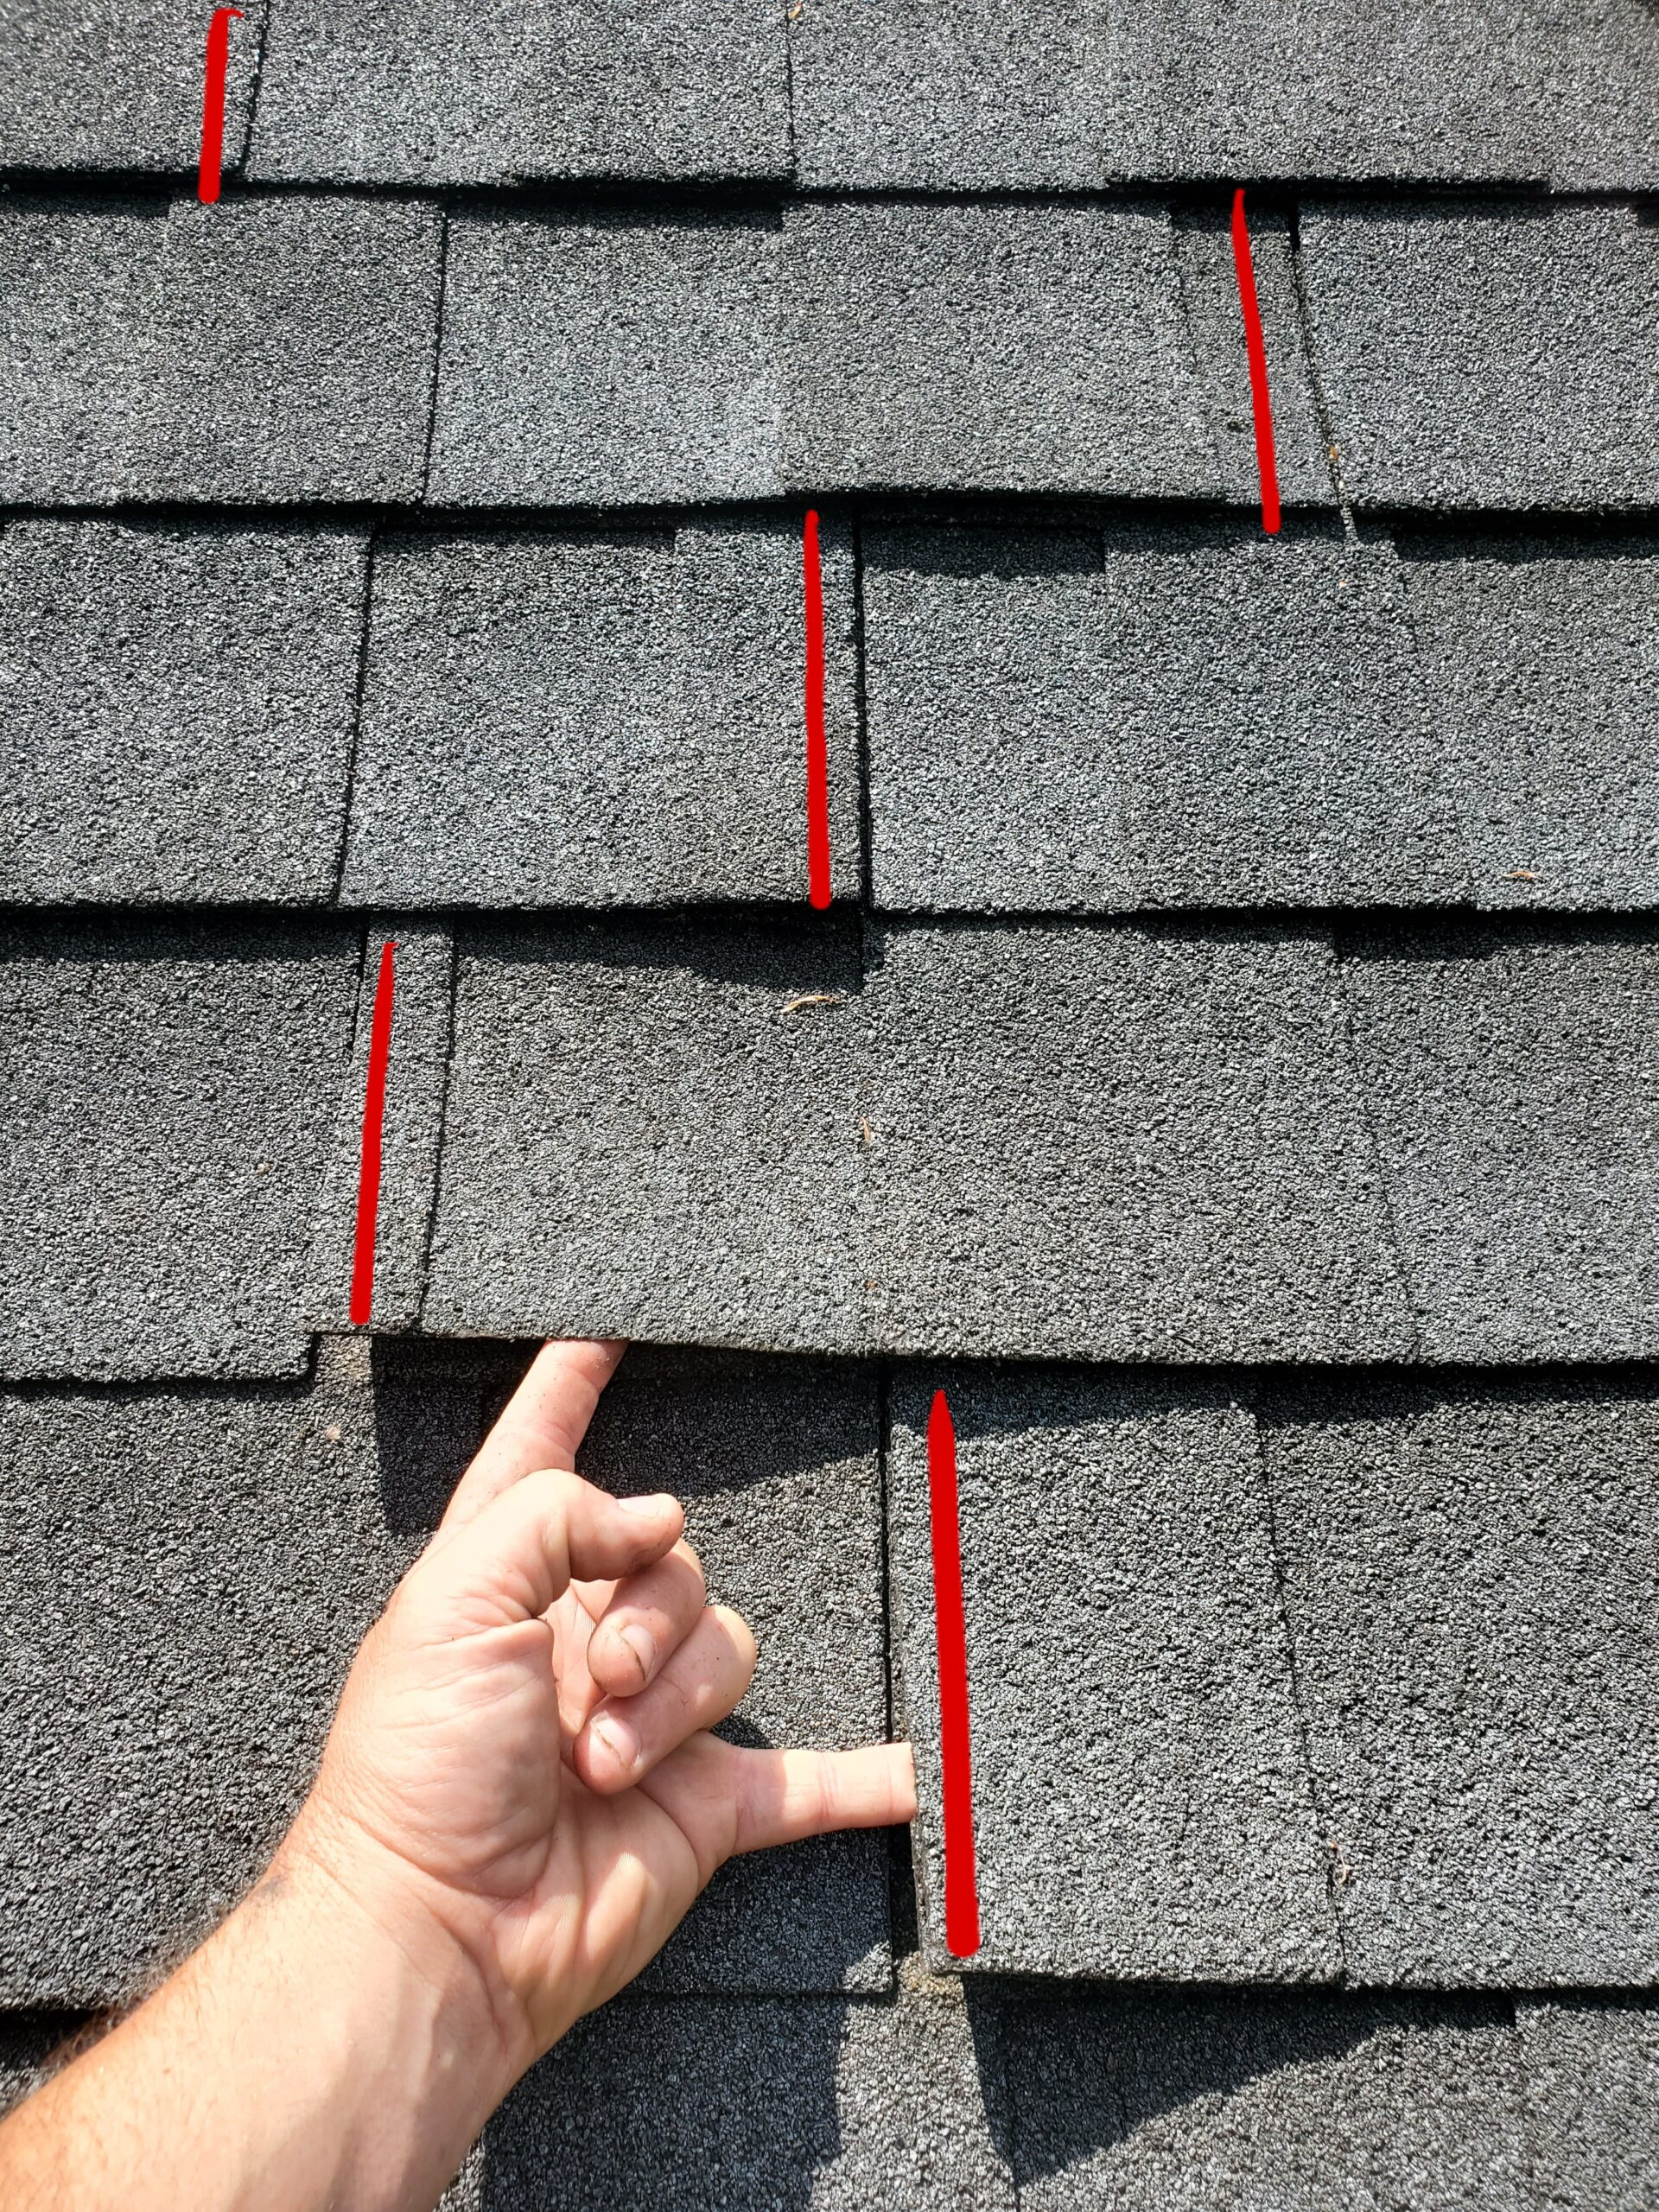 This is a picture of a group of Gray shingles and the 6